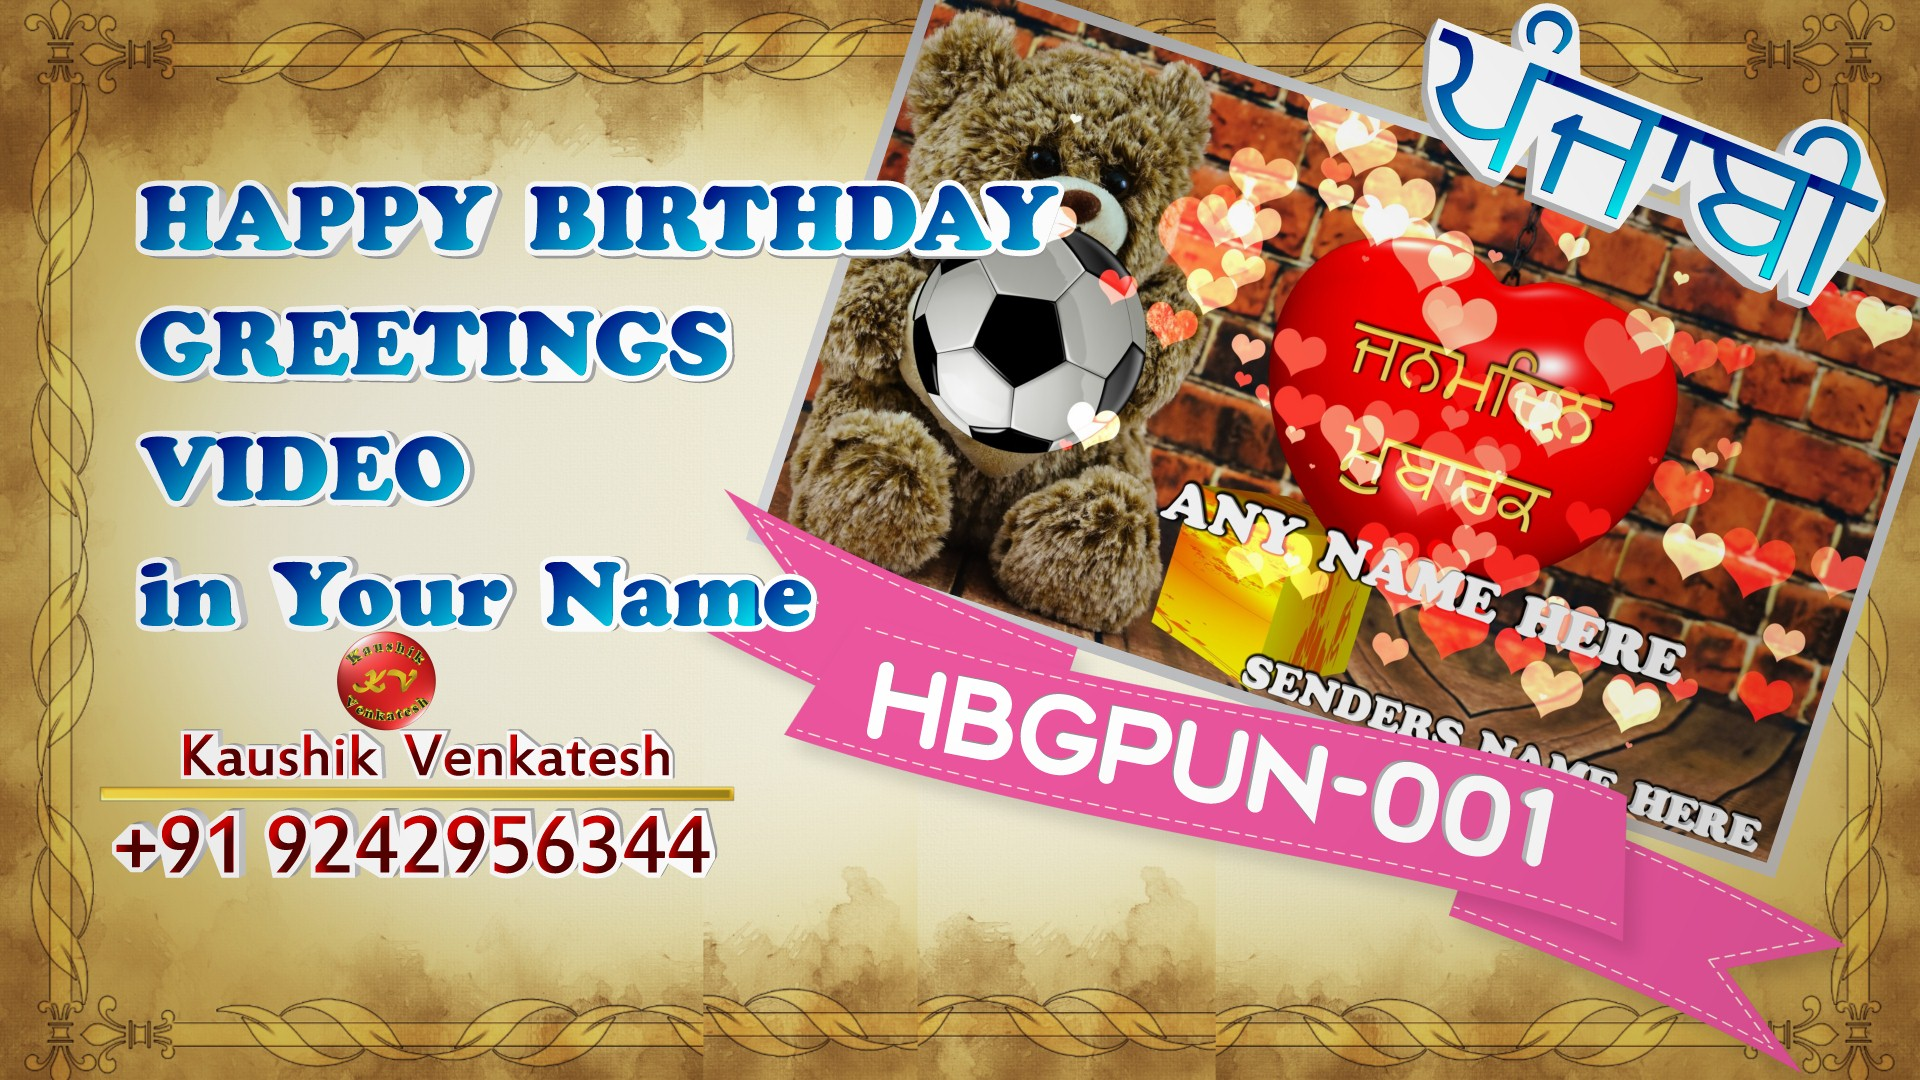 Punjabi Birthday Wishes Personalized Video